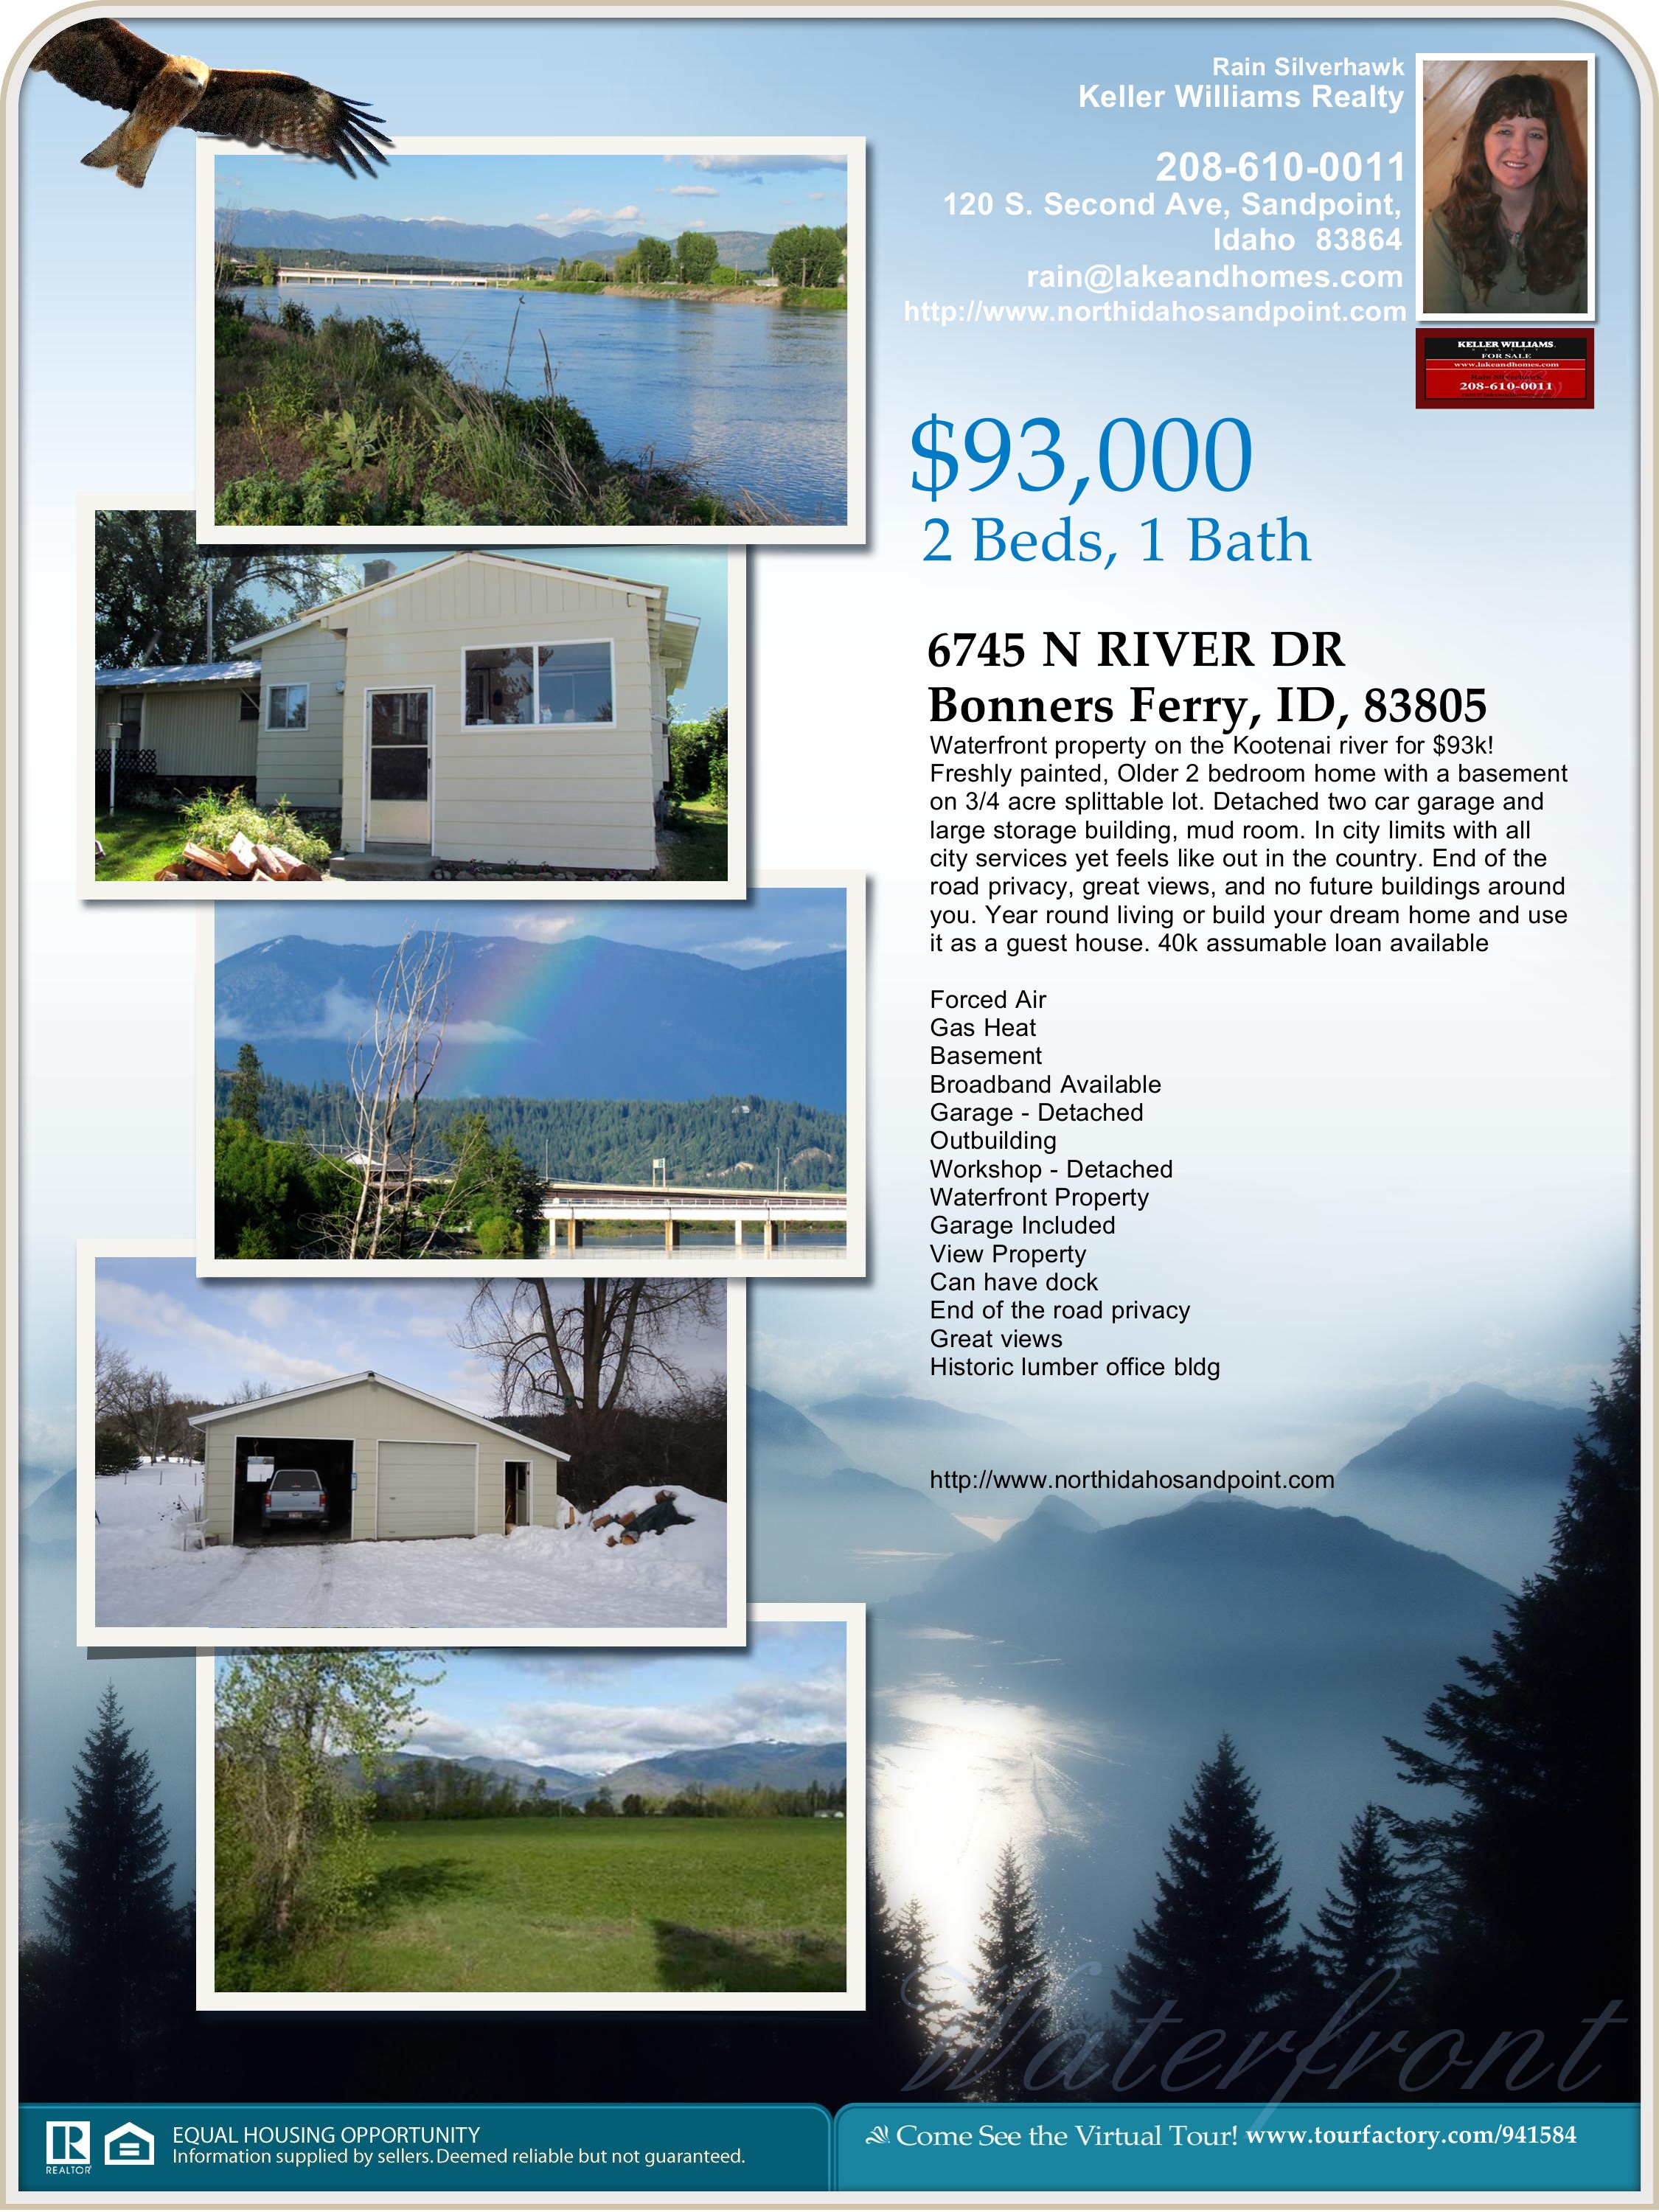 Waterfront home for $93,000 WOW! 6745 North River Rd Bonners